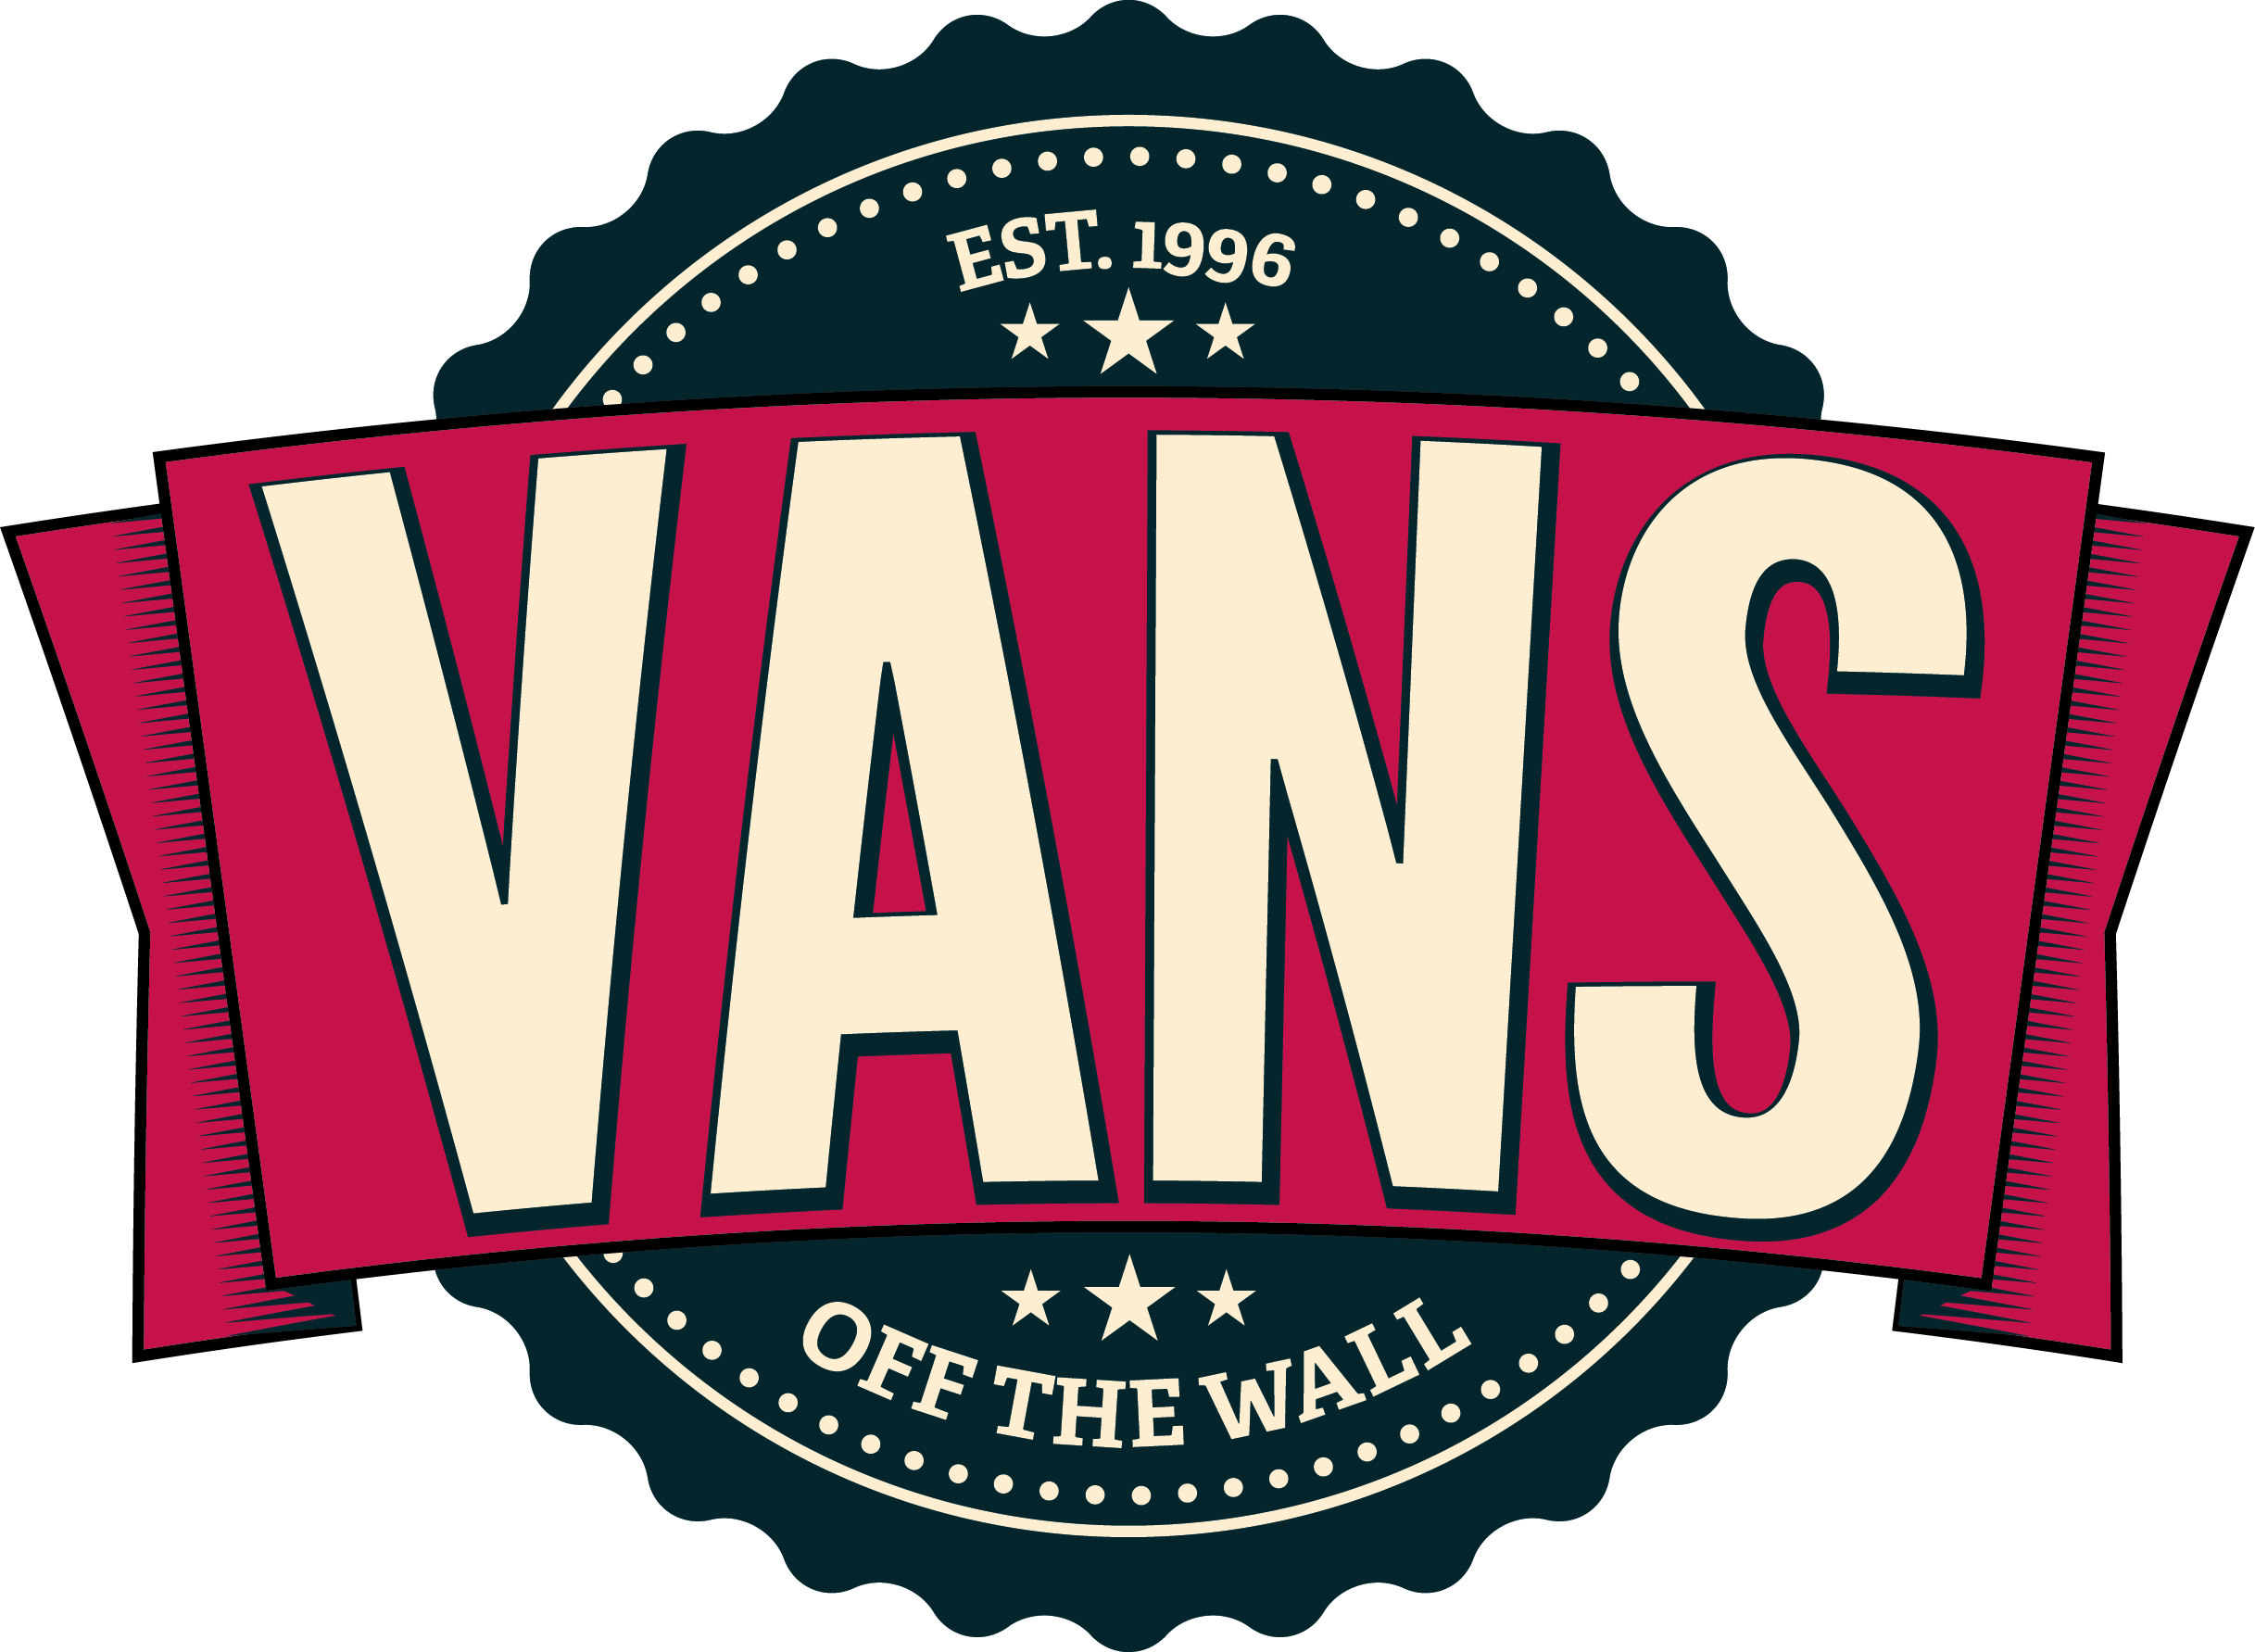 history of vans shoes 10 facts about the history of shoes wwwlifehackorg/articles/lifestyle/10-facts-about-the-history-shoeshtml have you ever wondered about the history of shoe making.